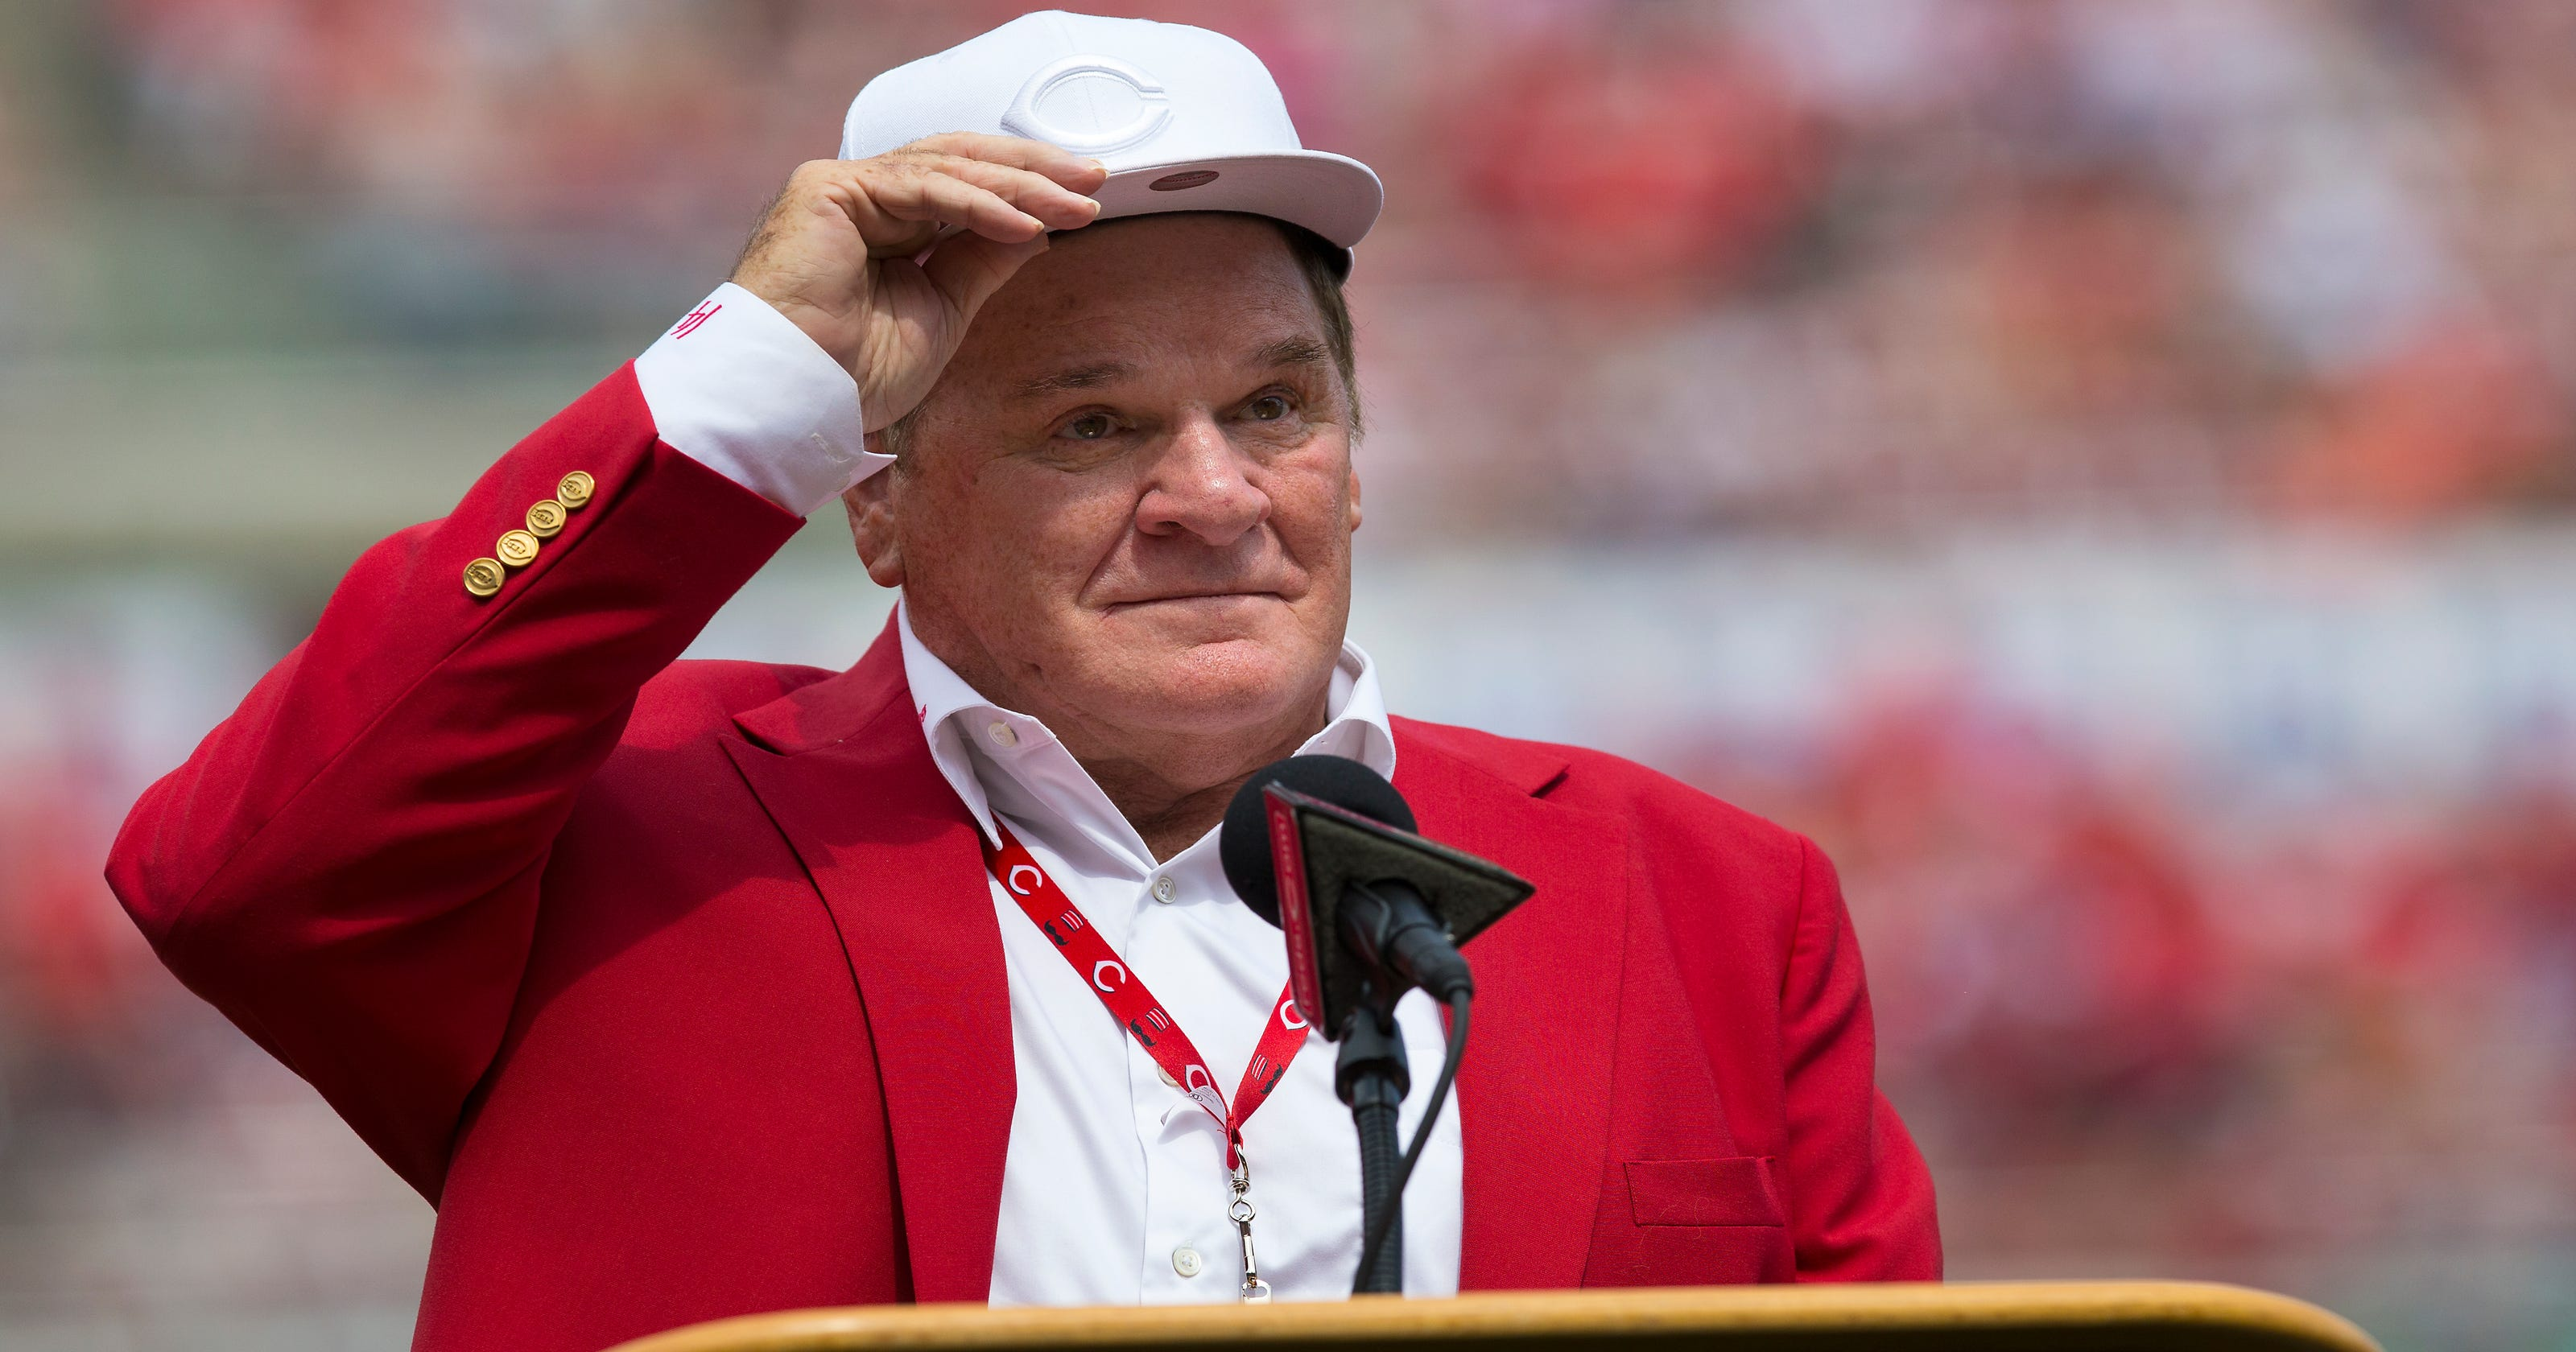 Pete Rose: Betting on baseball during career 'the only mistake I've ever made in my life'